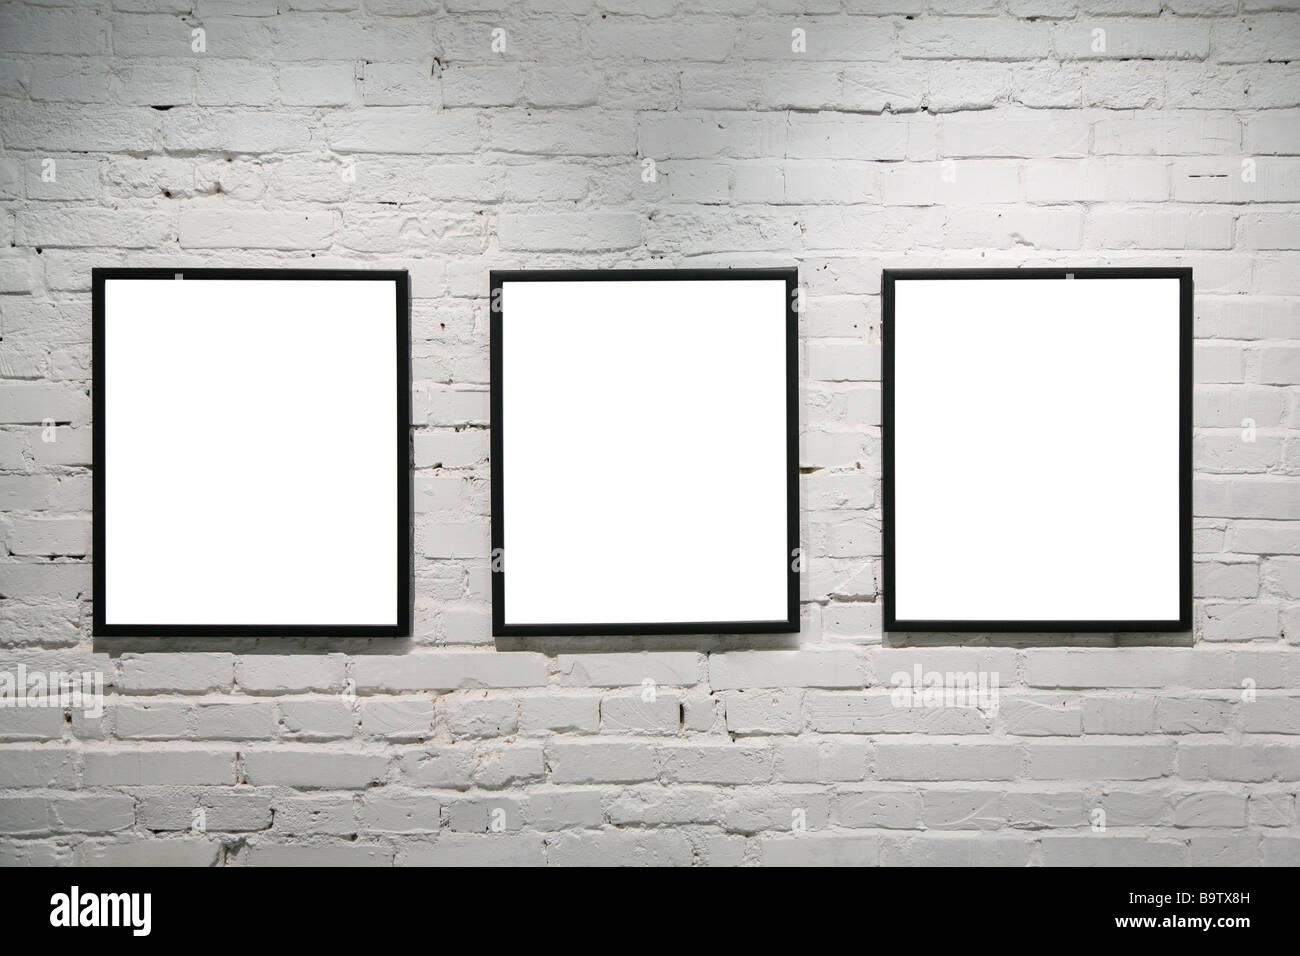 black frames on white brick wall 3 Stock Photo: 23289745 - Alamy